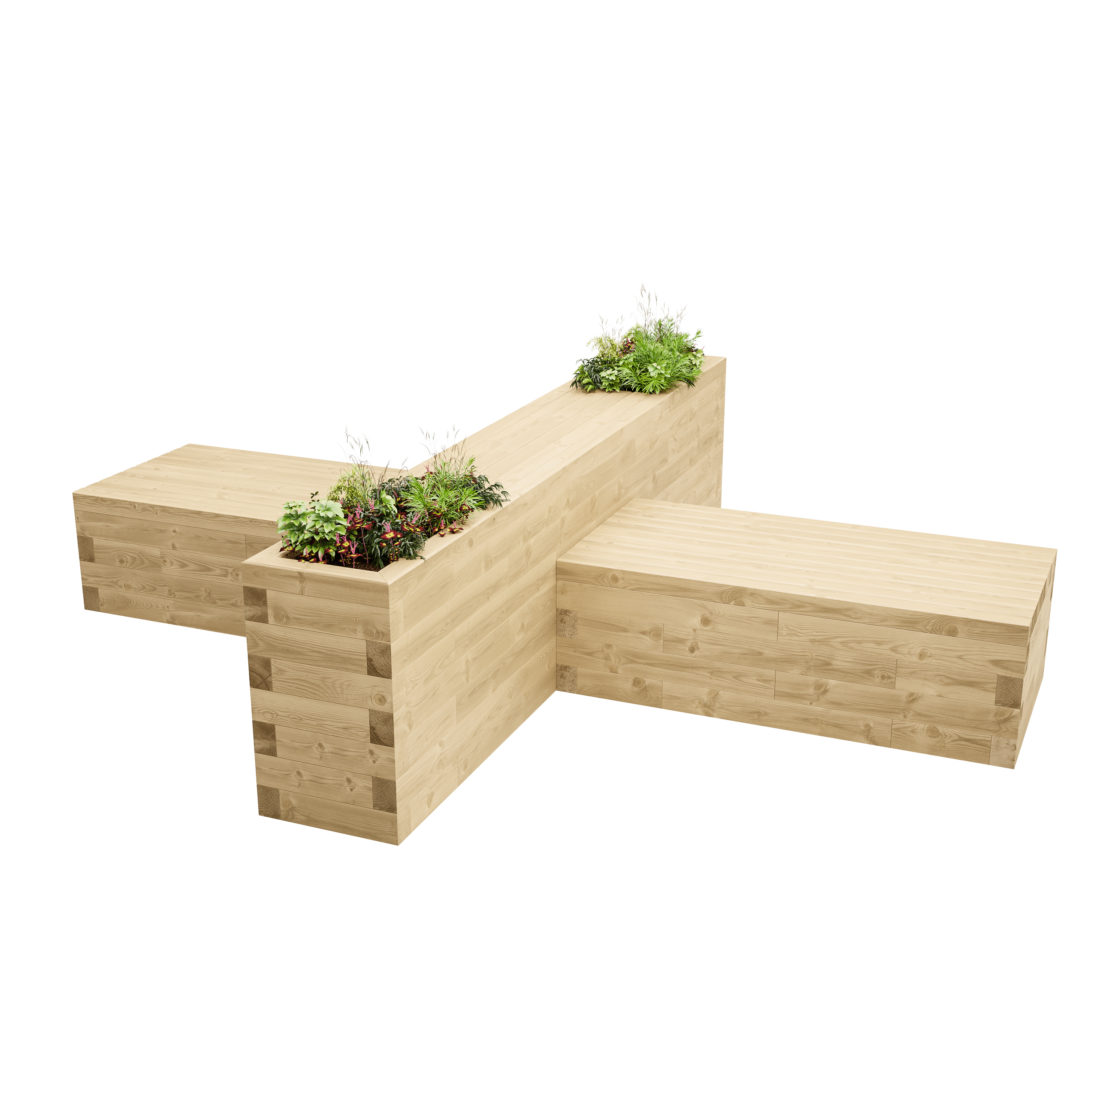 Canisp Table & Bench Image